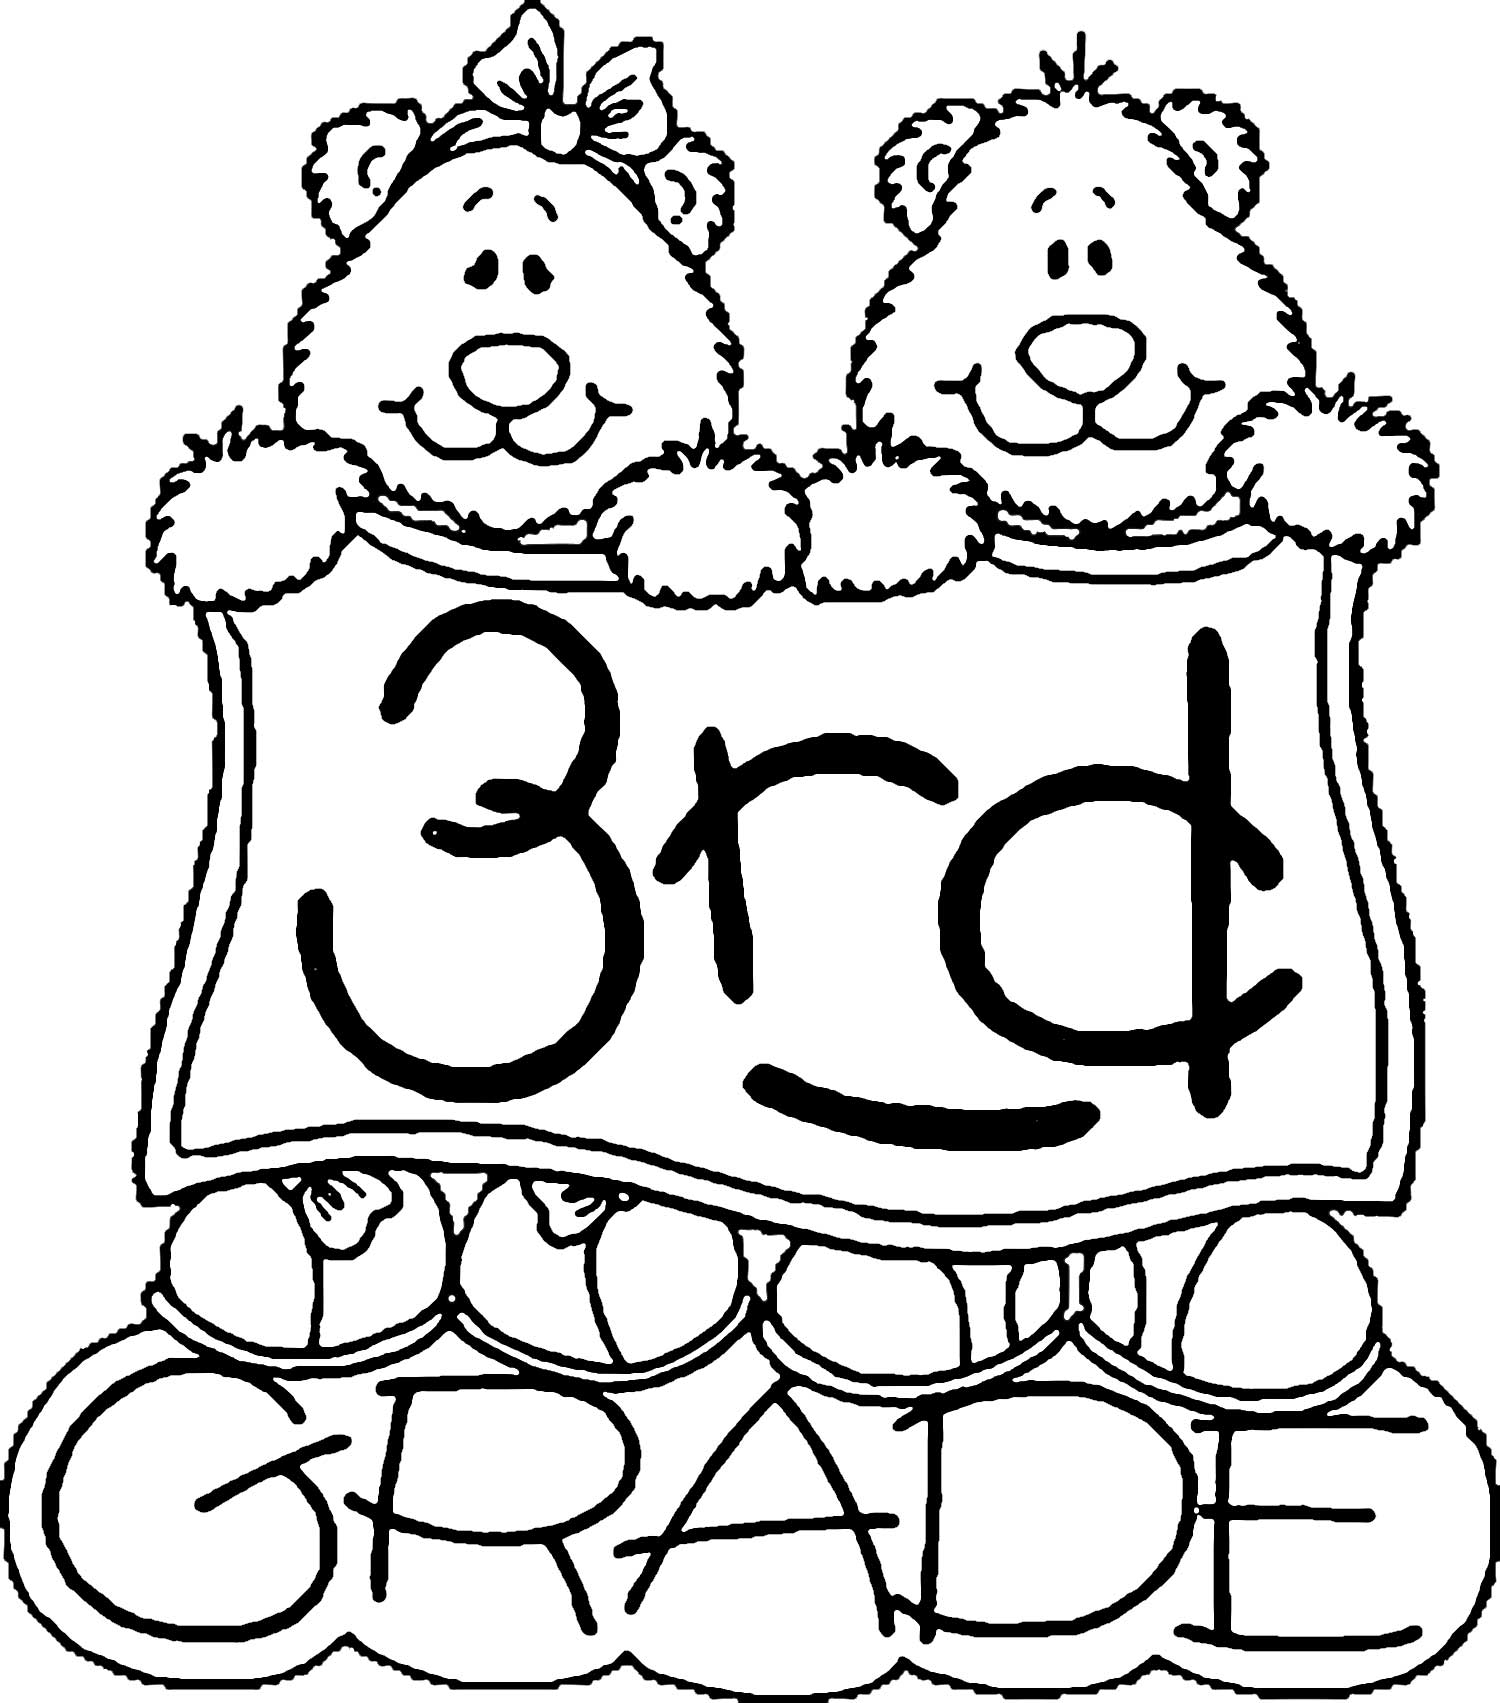 coloring pages 3rd grade 3rd grade coloring page wecoloring 3rd pages grade coloring